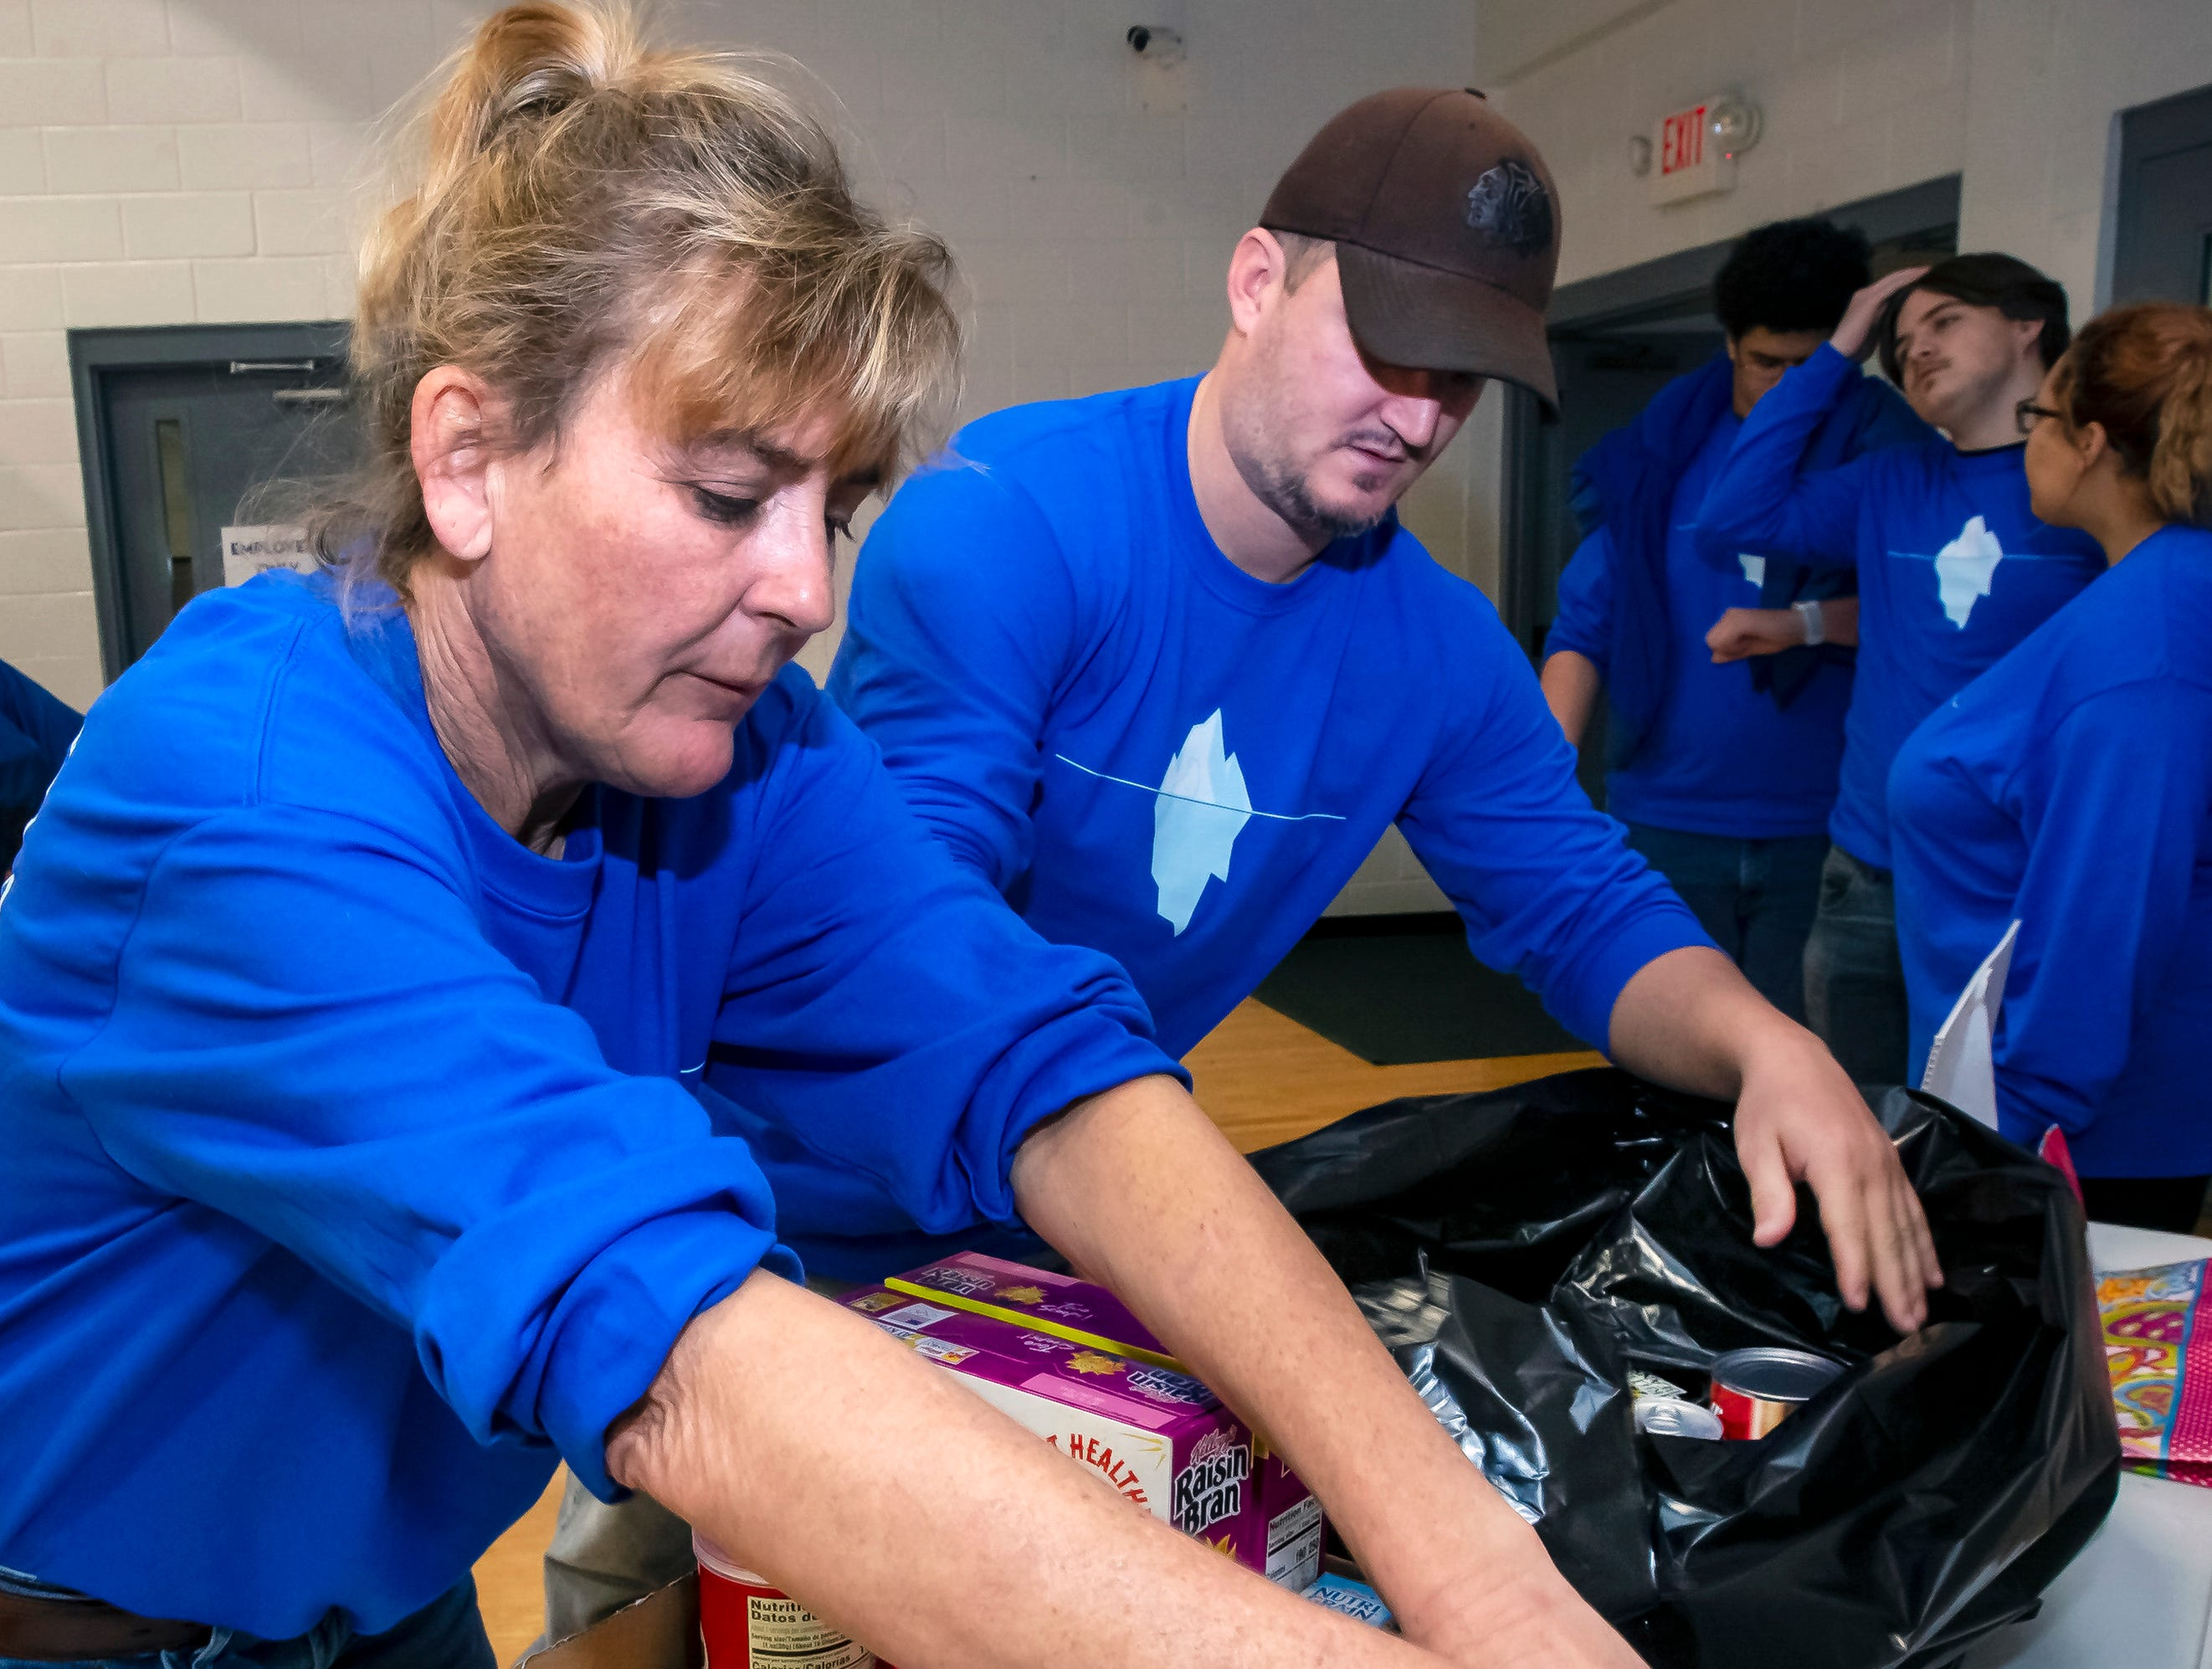 Marta Morgan and John Rupar bag donated items at the 17th annual Polar Bear Plunge held at SportsCom on Saturday, Jan. 5, 2019. Several large bags of food was taken to Greenhouse Ministries for their food bank.